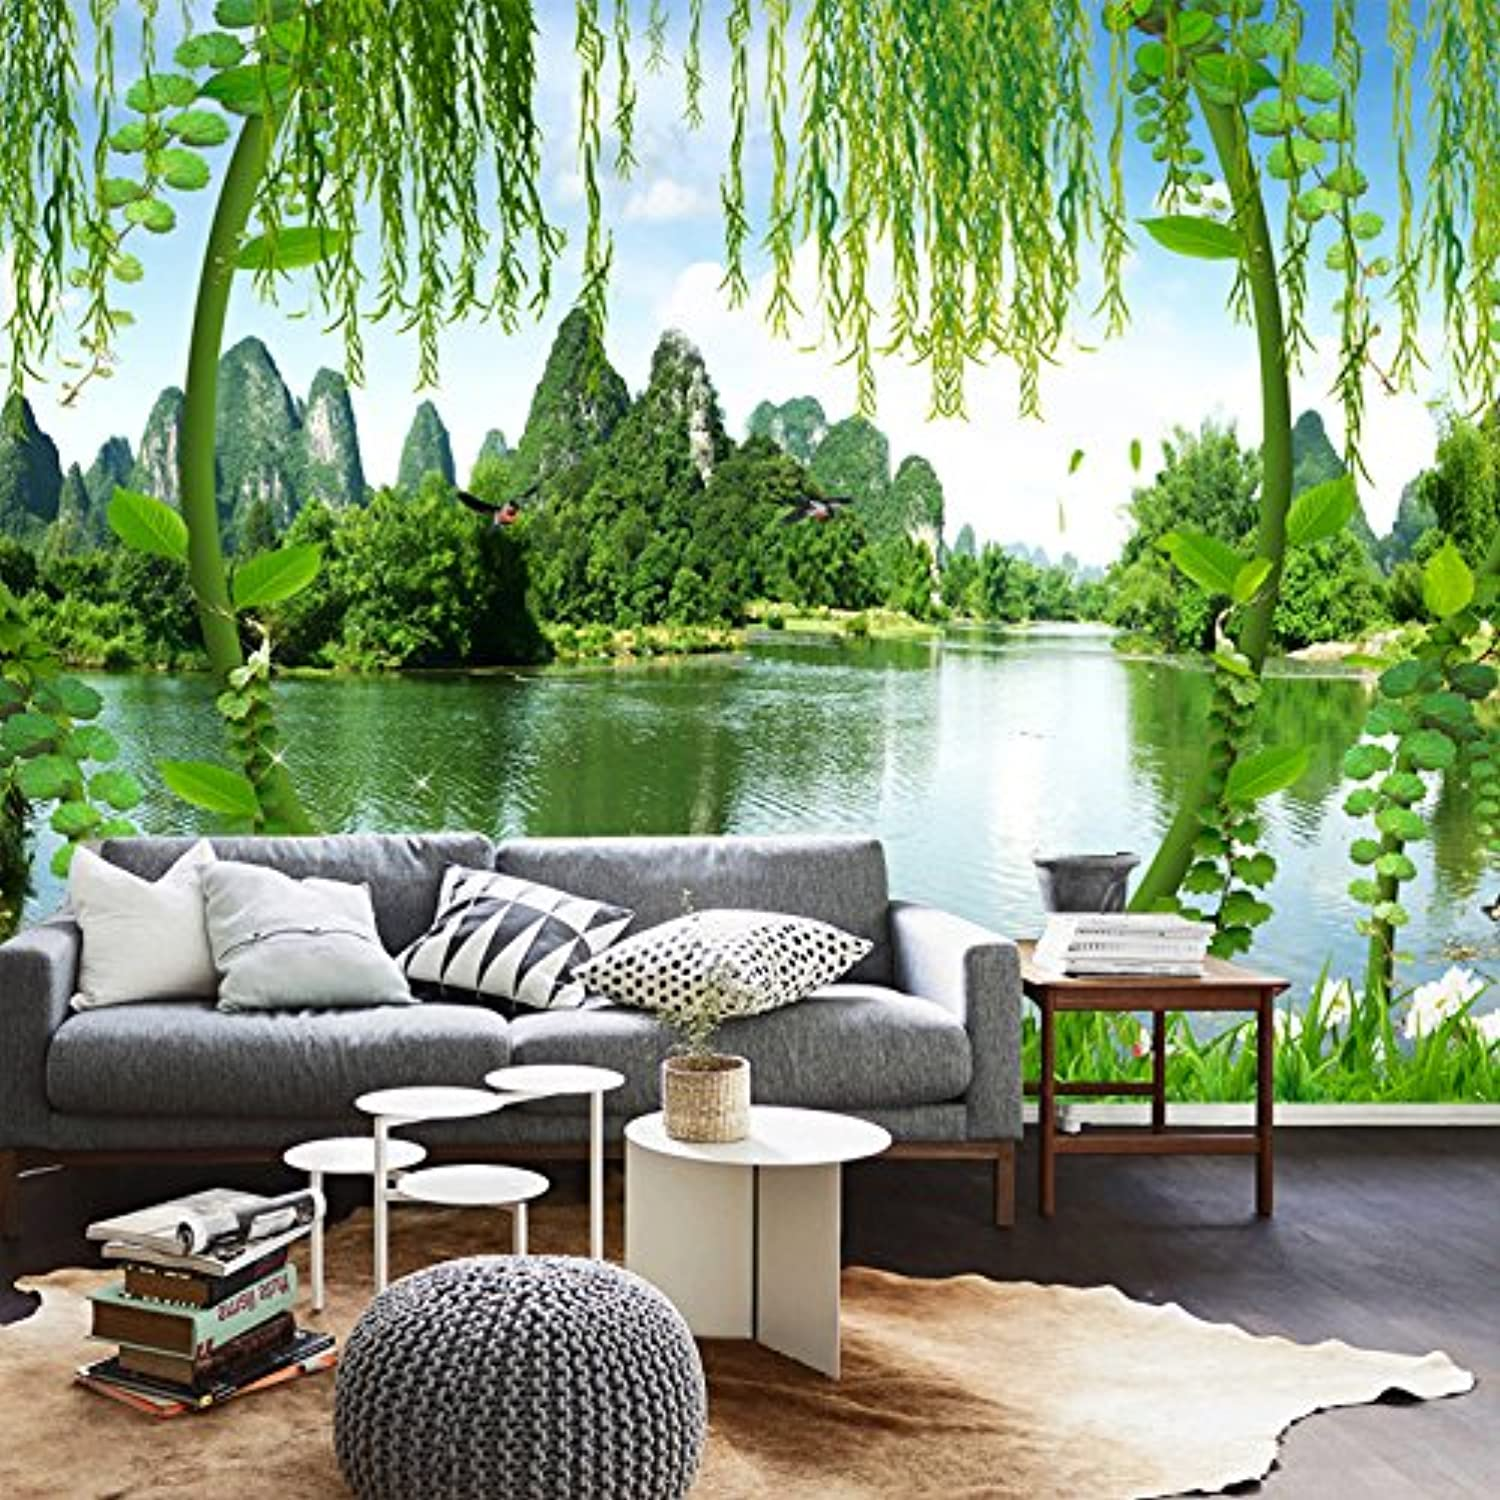 Sykdybz 3D silk cloth wallpaper 5D large mural landscape scenery TV wallpaper living room sofa bedroom background wall paper non woven wall covering 200x100cm